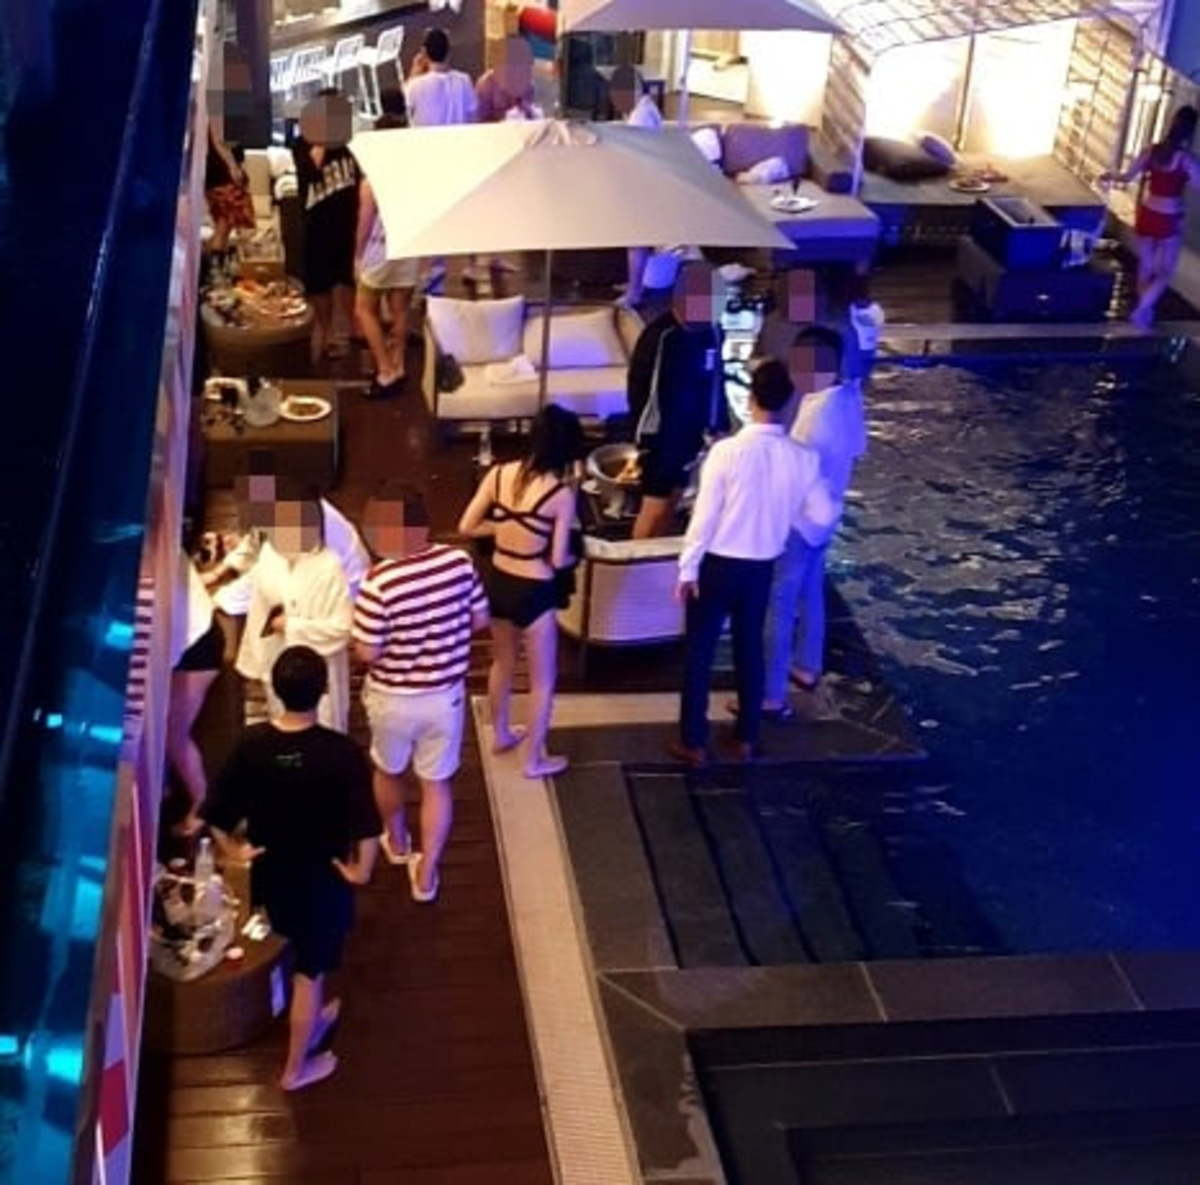 This photo, provided by the Gangneung city government, shows the scene of a pool party at a hotel in Gangneung on Saturday. (Gangneung city government)